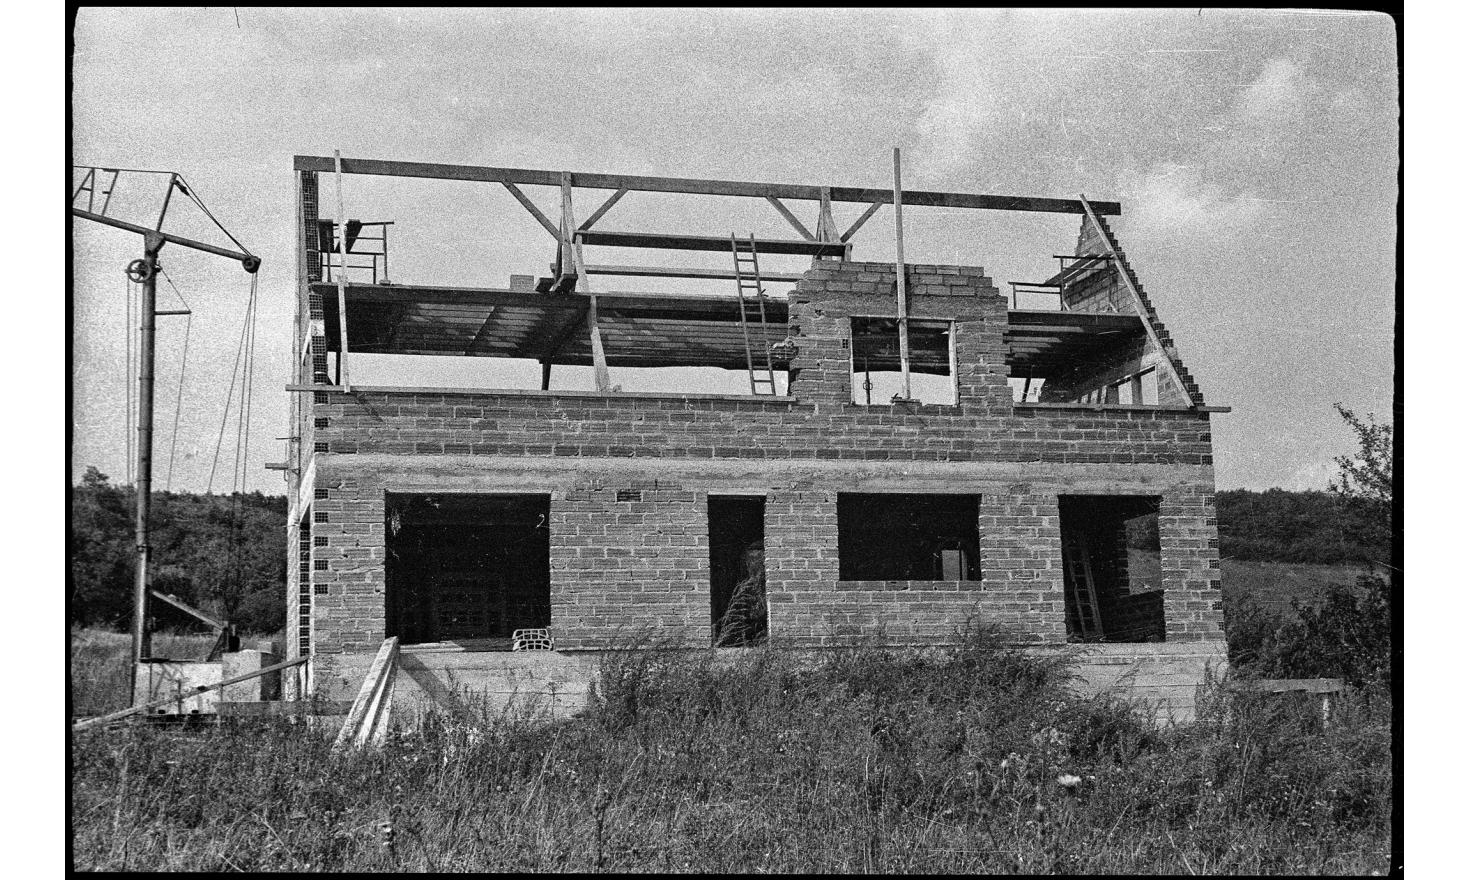 The house of my parents is under construction. Their dream is coming true. Igny, 1963.